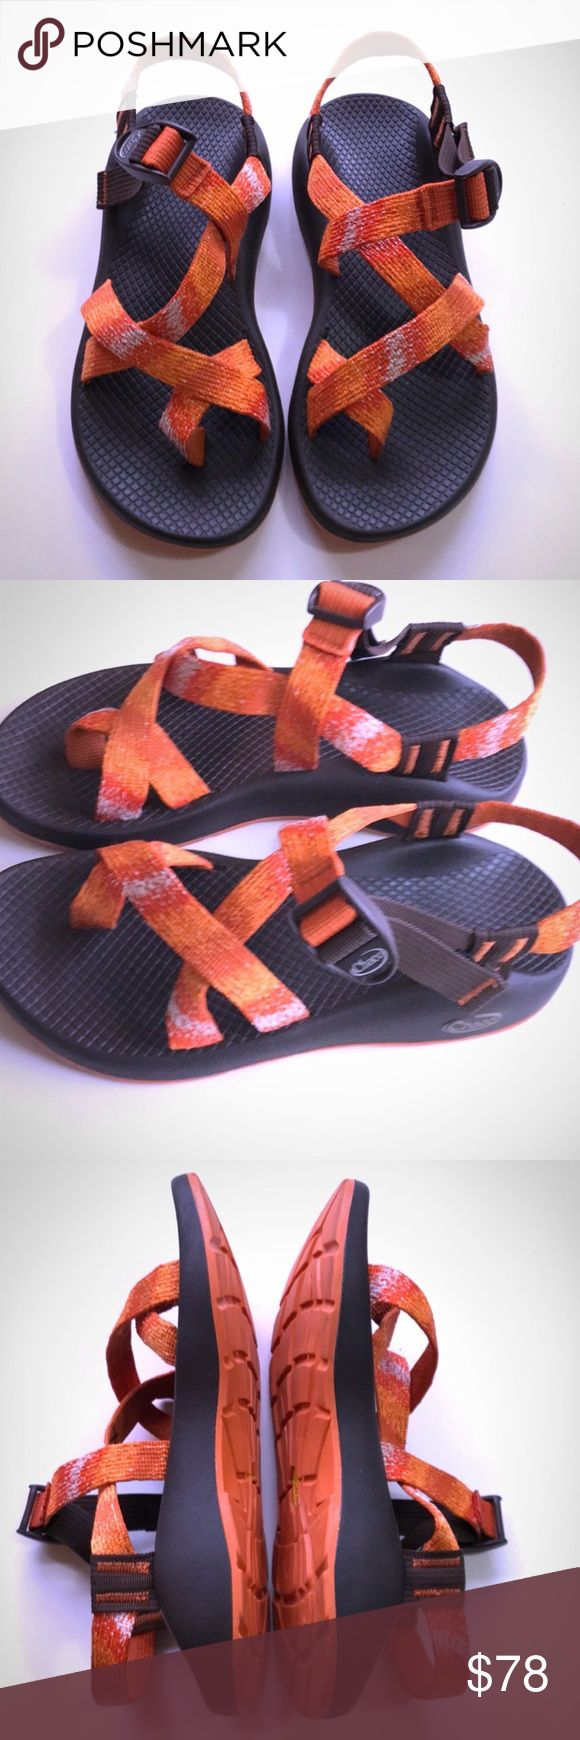 ⚡FLASH SALE⚡EUC Chaco orange sandals EUC Orange Chaco z2 Yampa sandals. These are a size 7 women's. Chaco Shoes Sandals